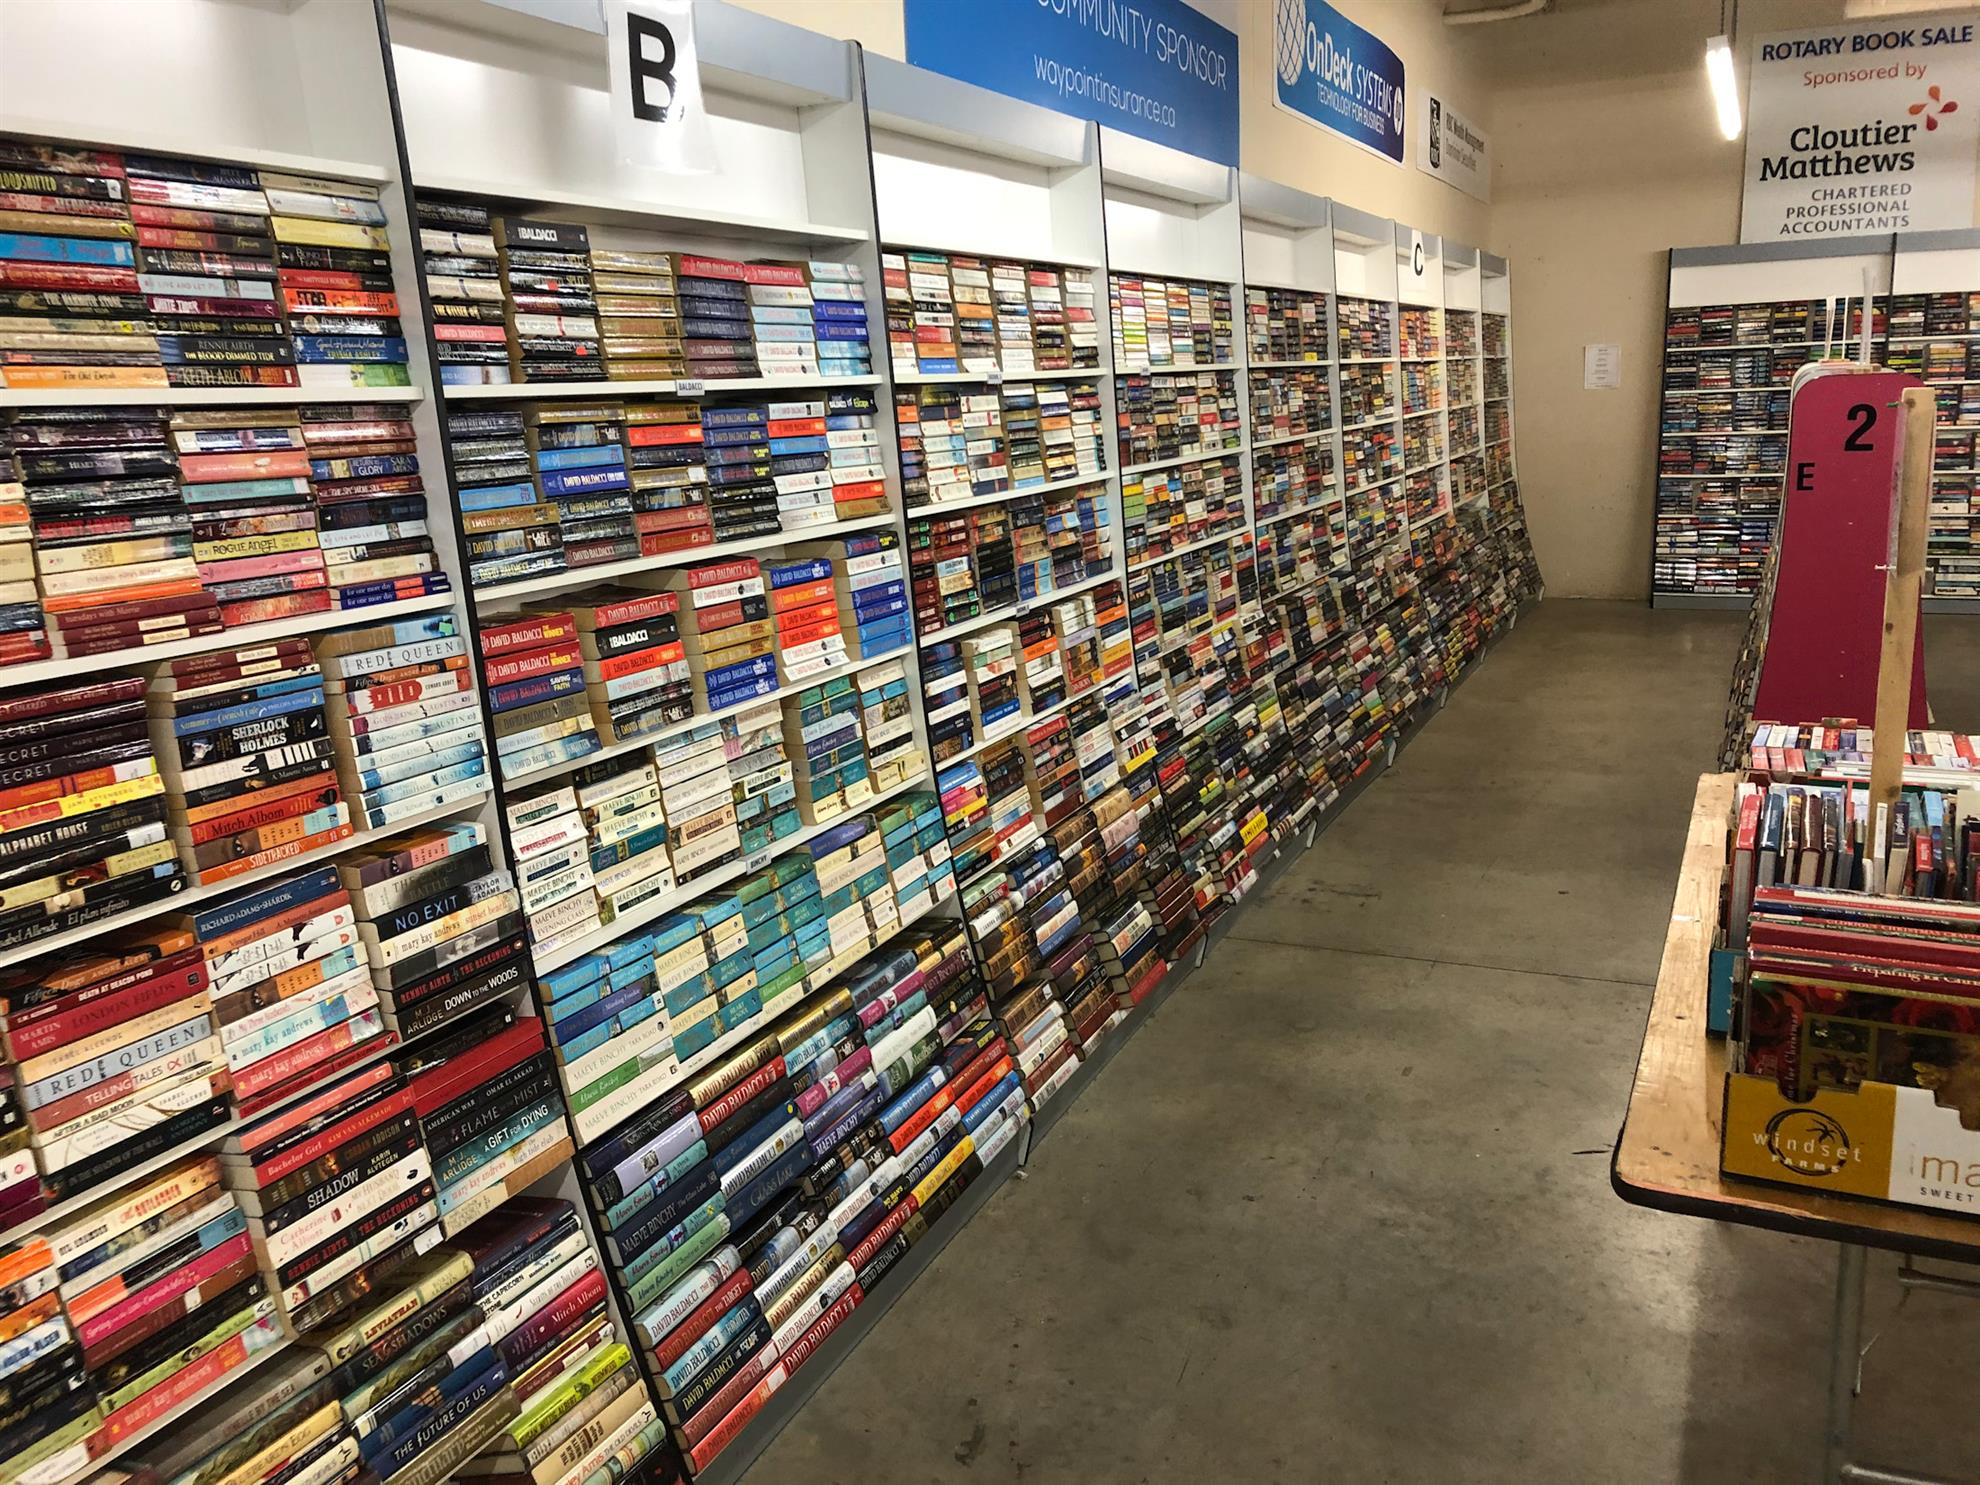 Rotary Club of Courtney Book Sale 2019